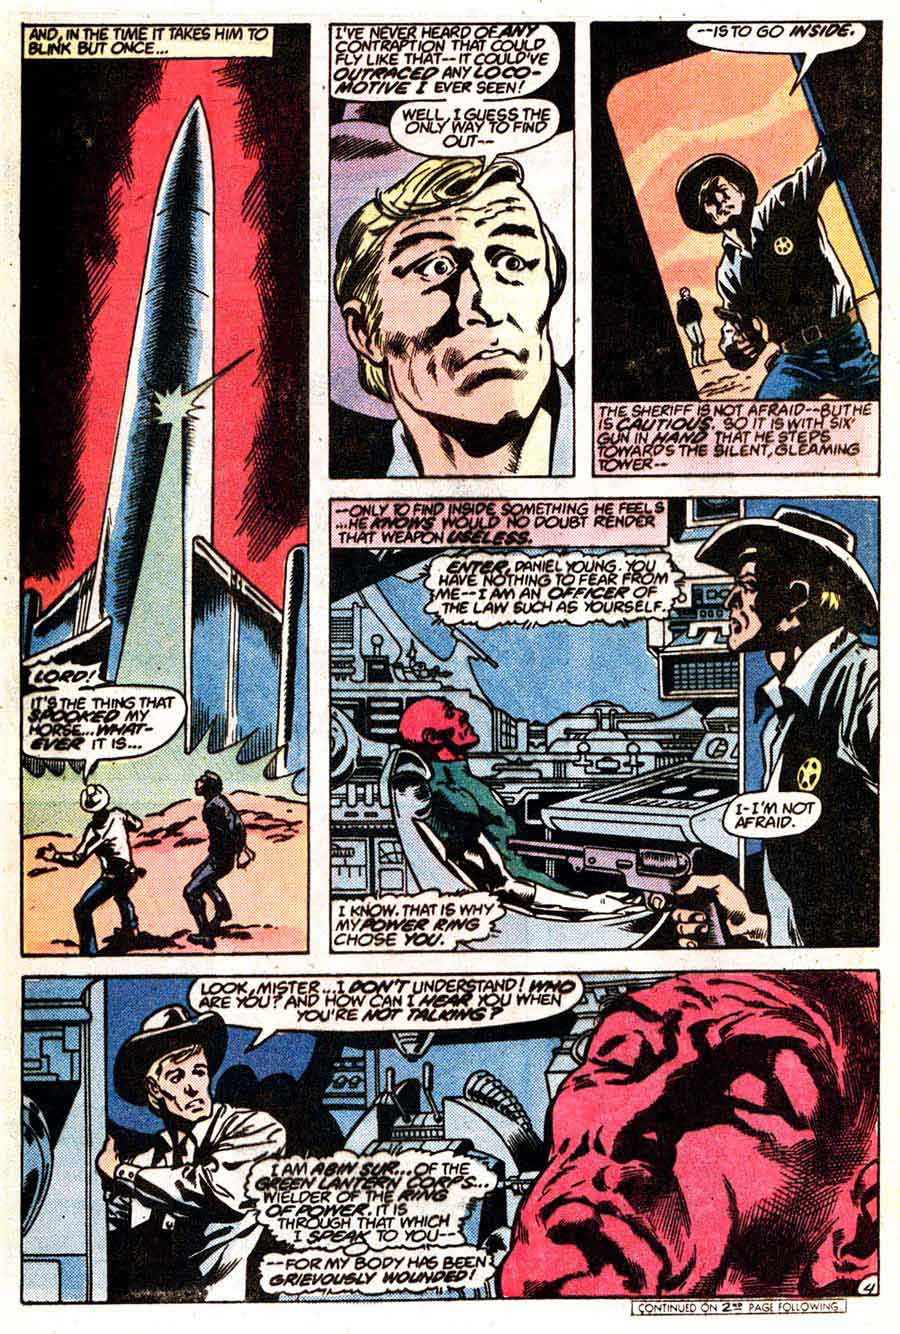 Green Lantern v2 #149 dc comic book page art by Don Newton